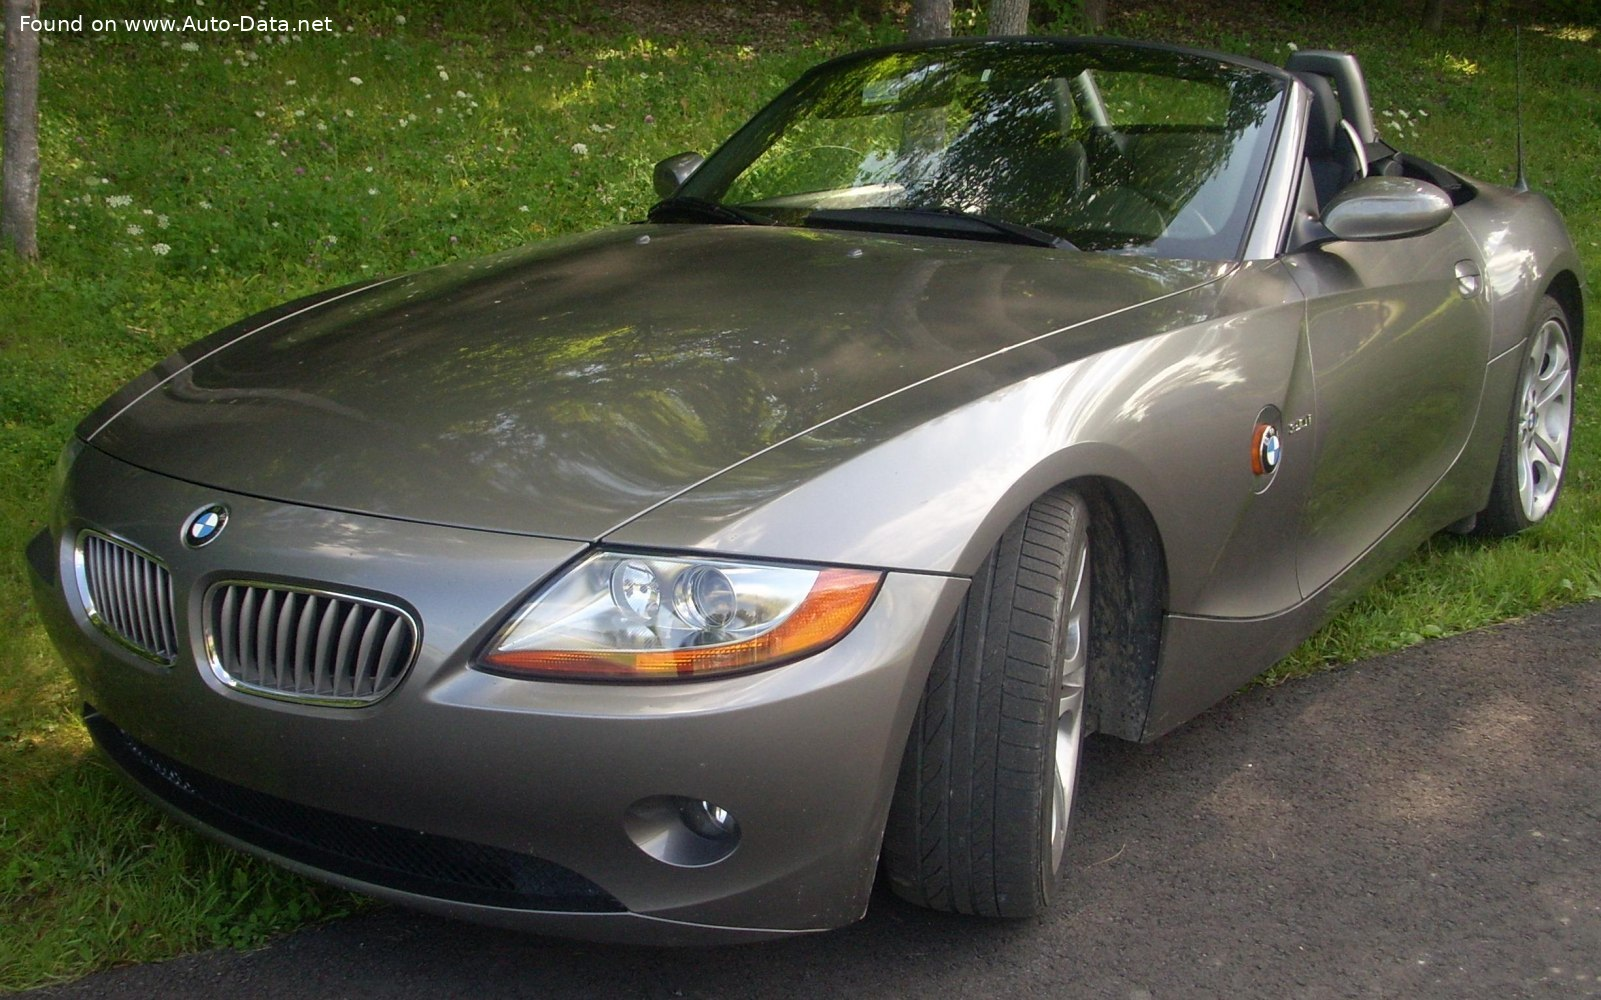 2002 Bmw Z4 E85 3 0i 231 Hp Technical Specs Data Fuel Consumption Dimensions